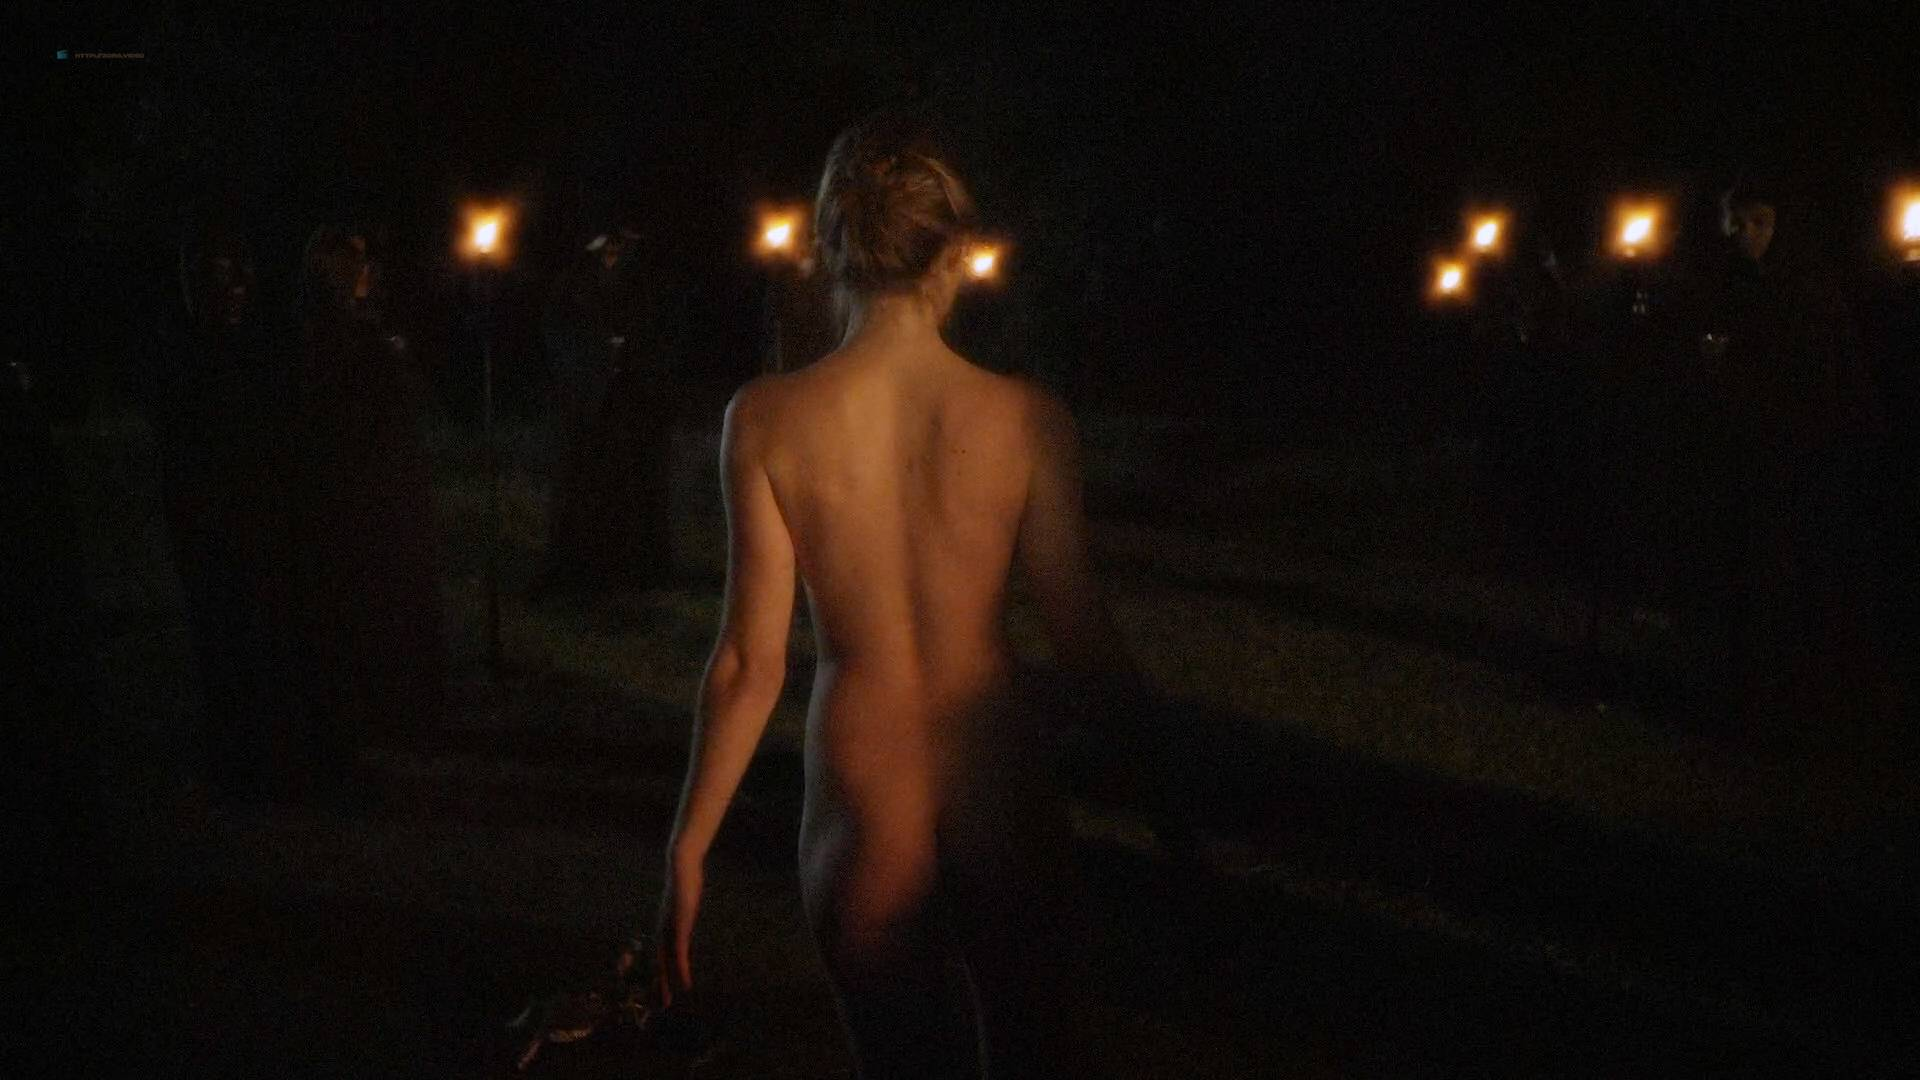 Allie Gallerani nude full frontal Amber Coney, Zoe Bleu, and other's nude too - The Institute (2017) HD 1080p Web (15)